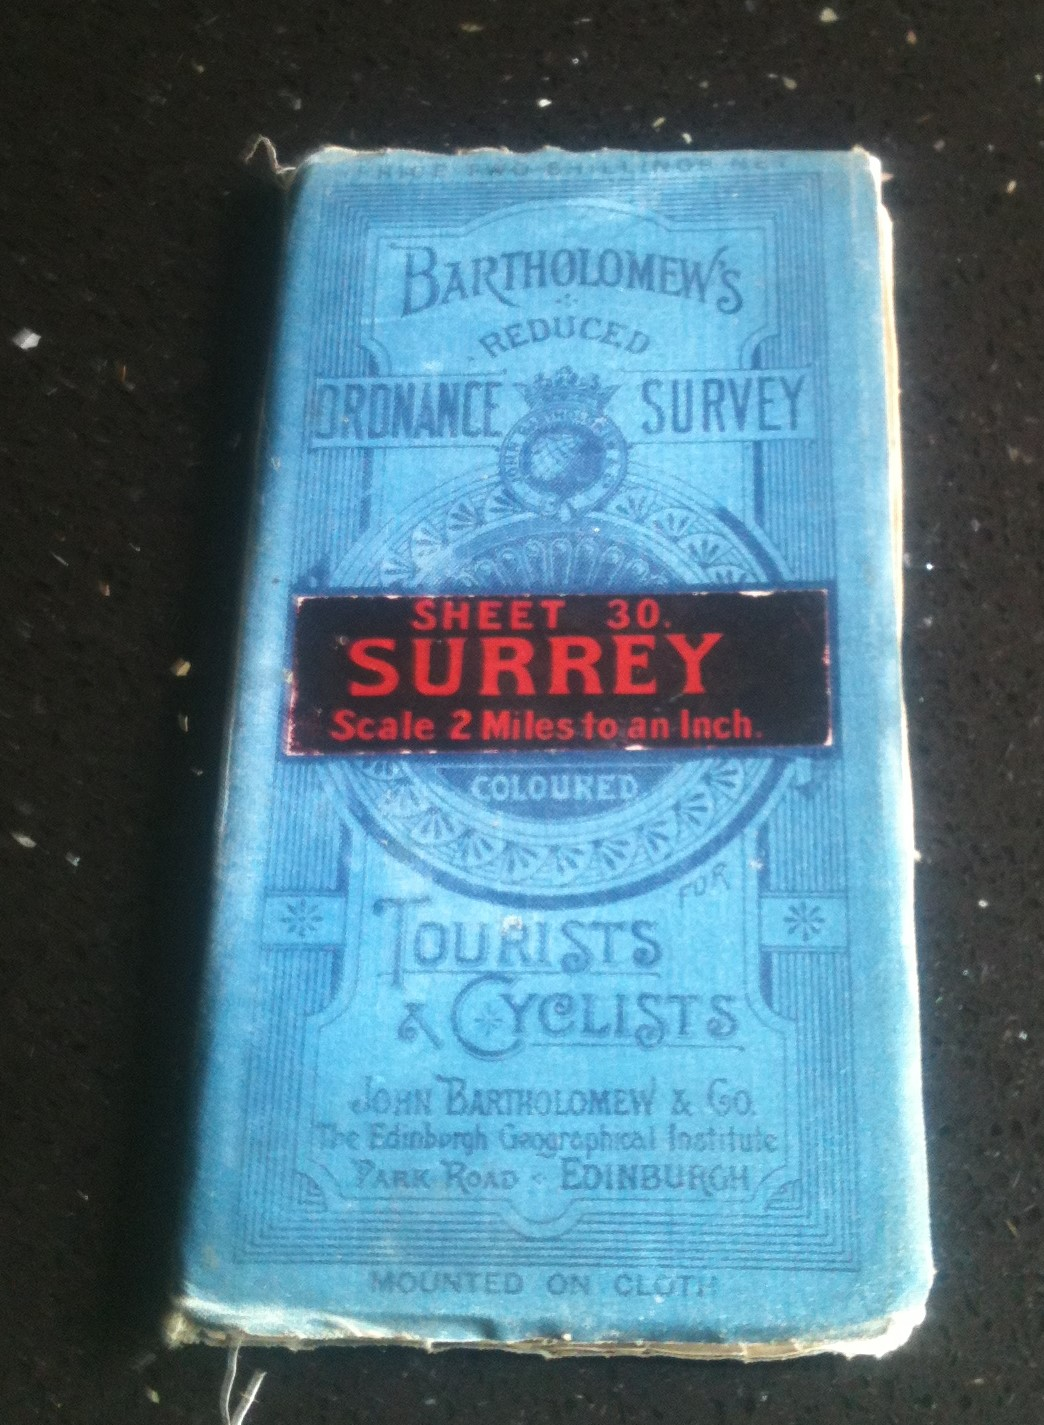 Image for Bartholomew's Reduced Ordnance Survey  Sheet 30 Surrey Scale 2 Miles to an Inch